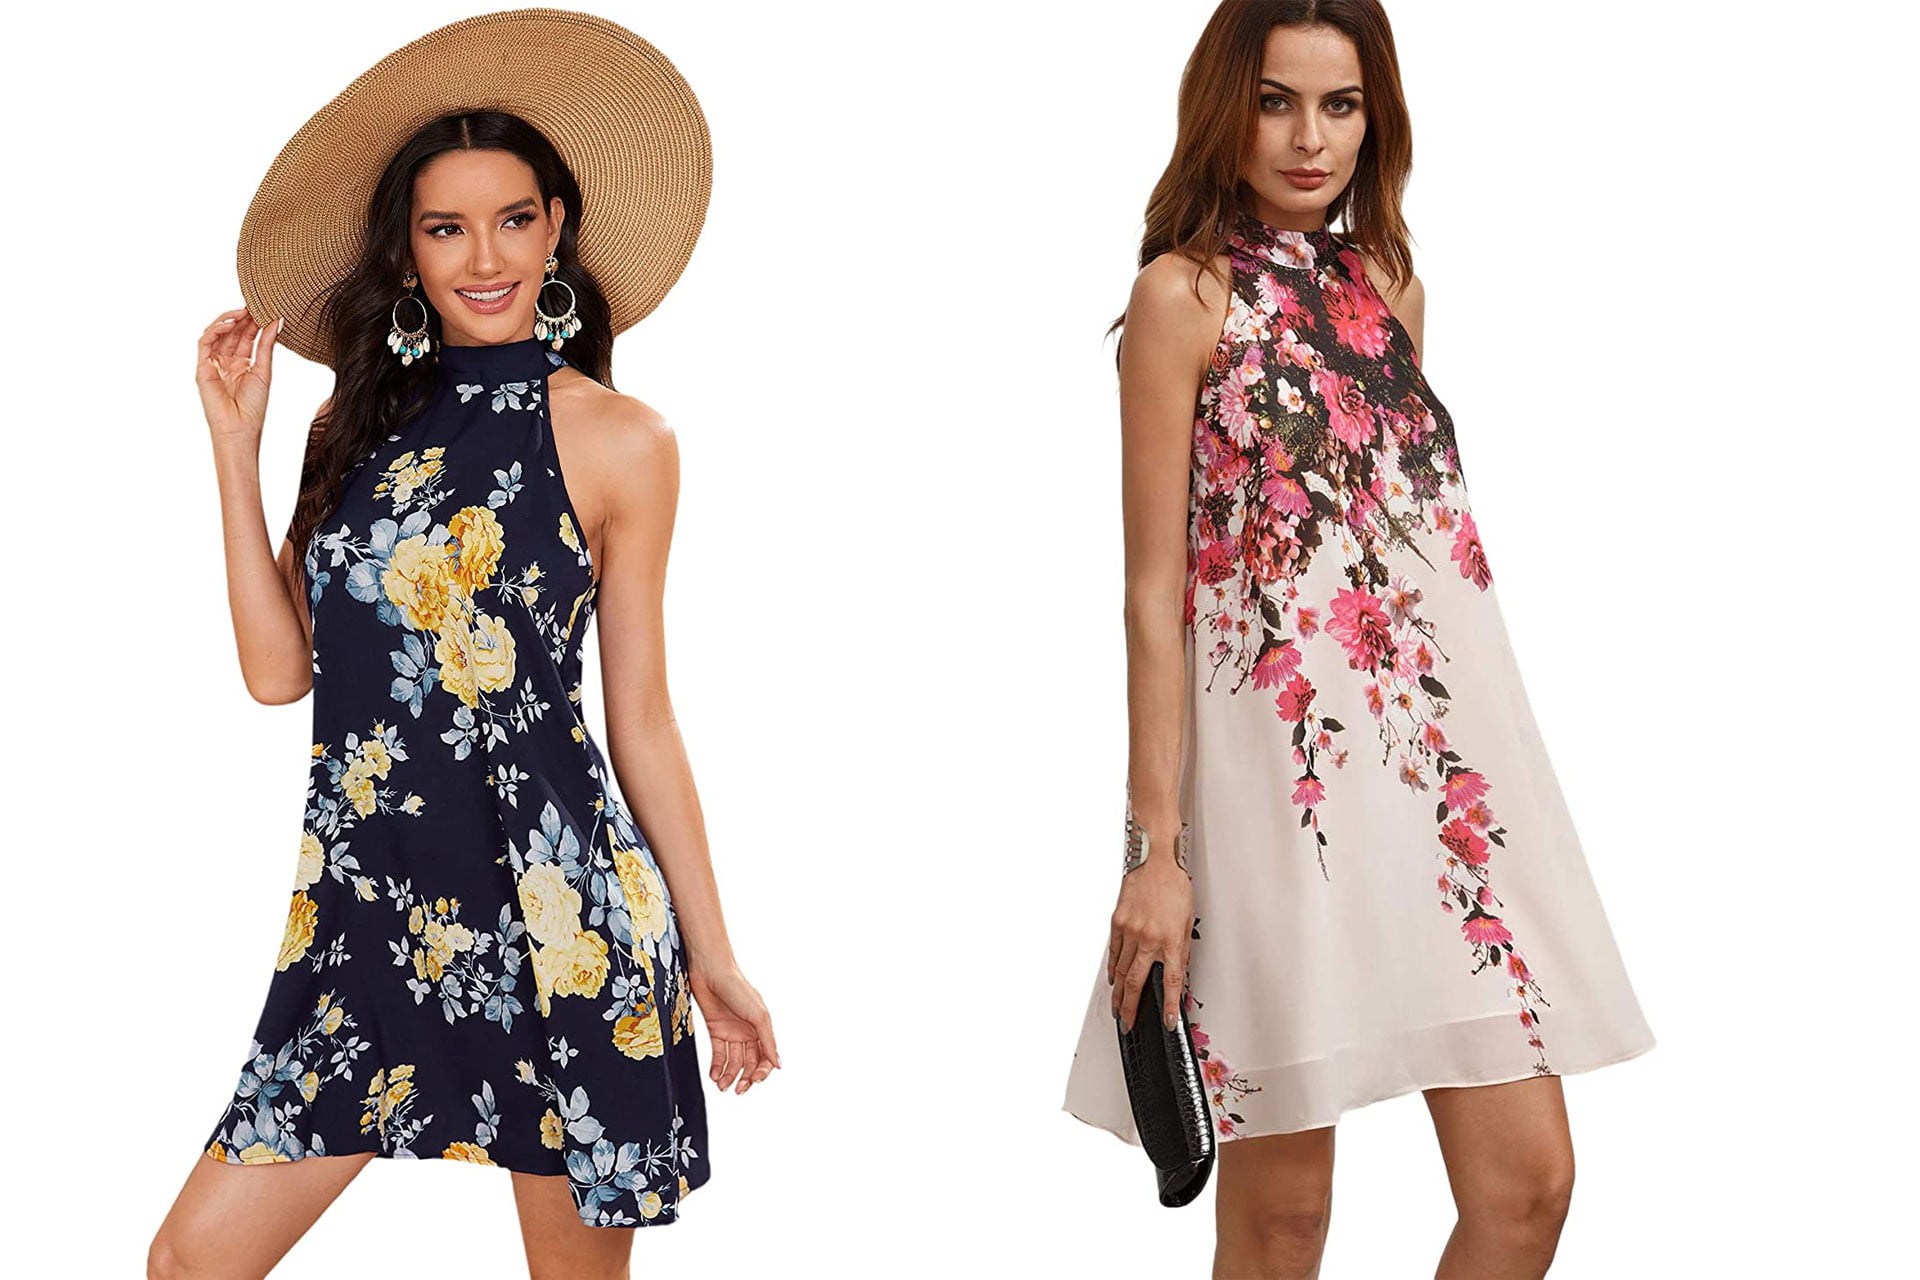 what type of dress to wear to a summer wedding: Floral Print Sleeveless Halter Neck Party Dress